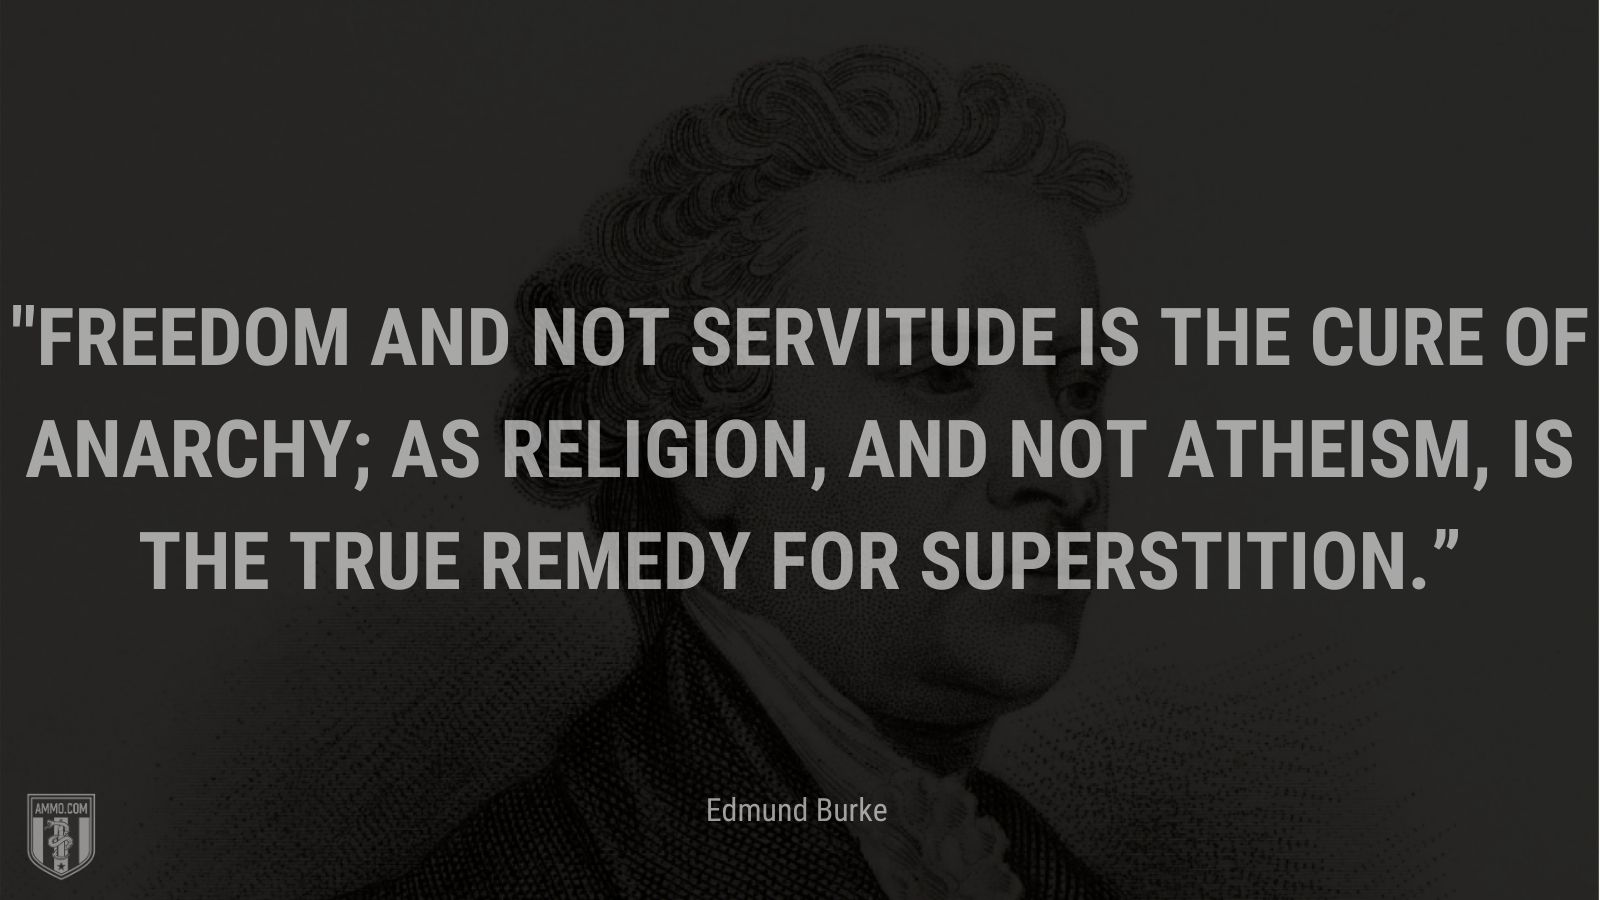 """""""Freedom and not servitude is the cure of anarchy; as religion, and not atheism, is the true remedy for superstition."""" - Edmund Burke"""